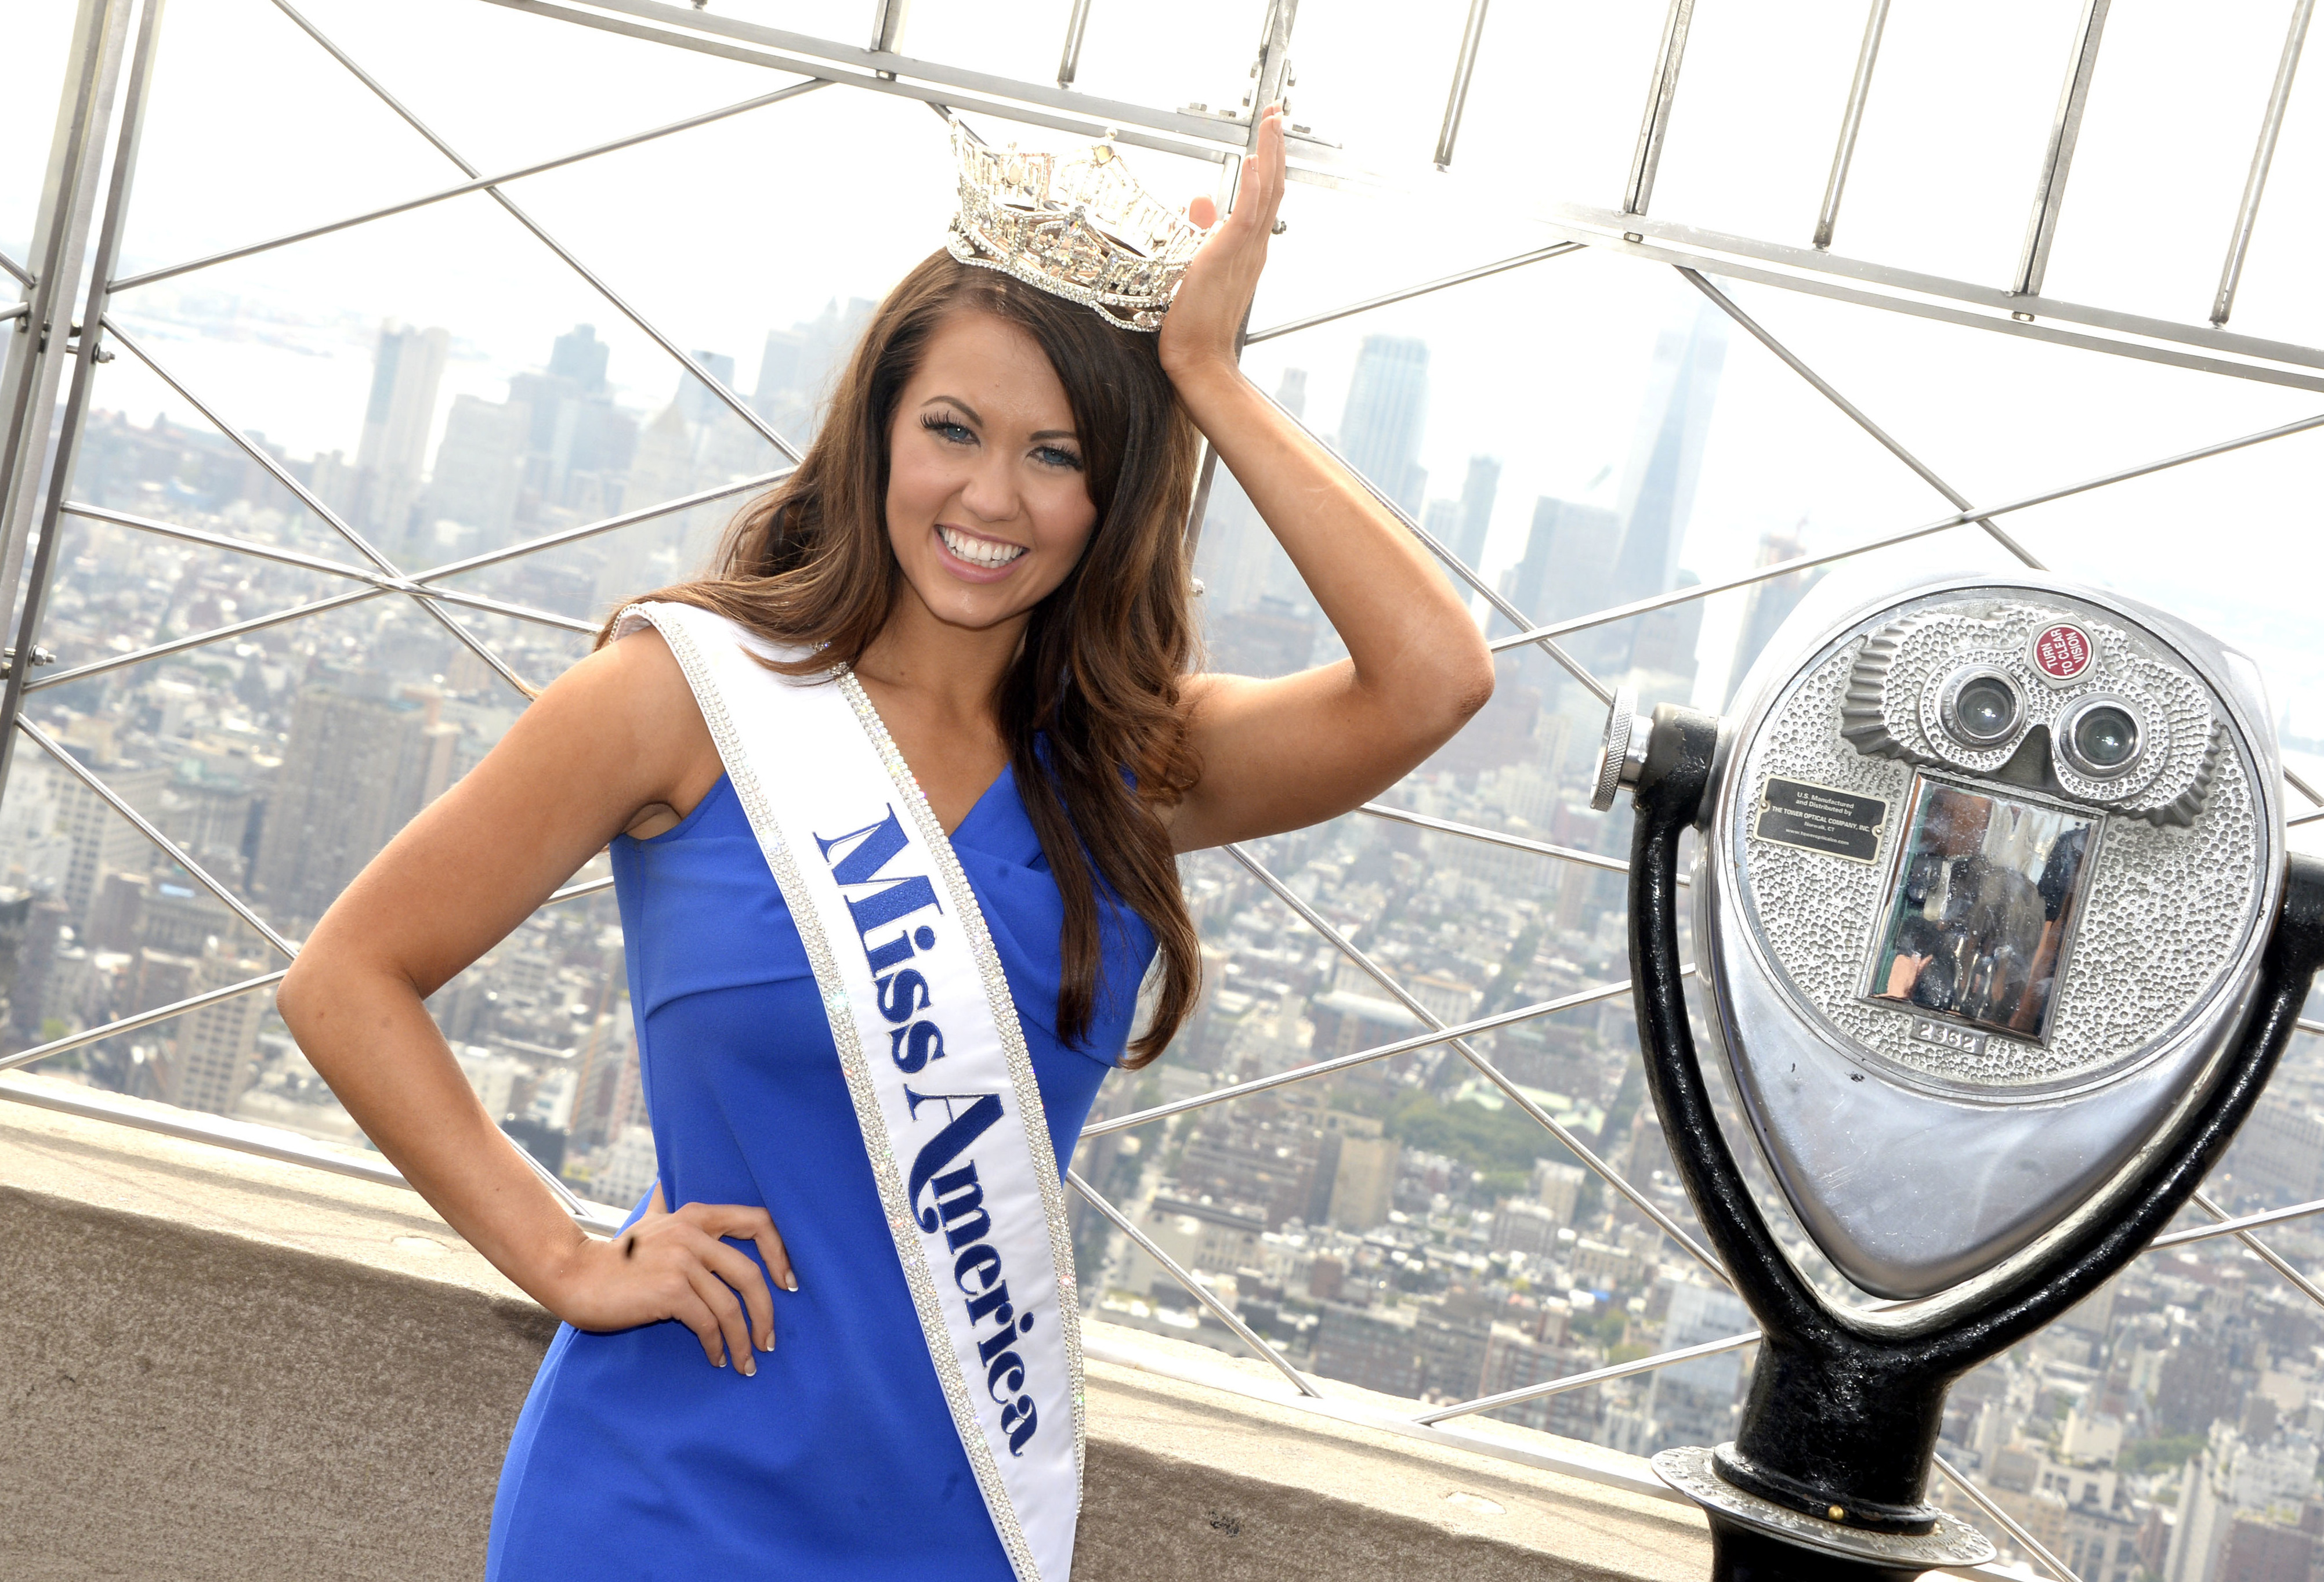 Miss America 2018 Cara Mund poses for photos at the Empire State Building. When: 12 Sep 2017 Credit: DyD Fotografos/Future Image/WENN.com